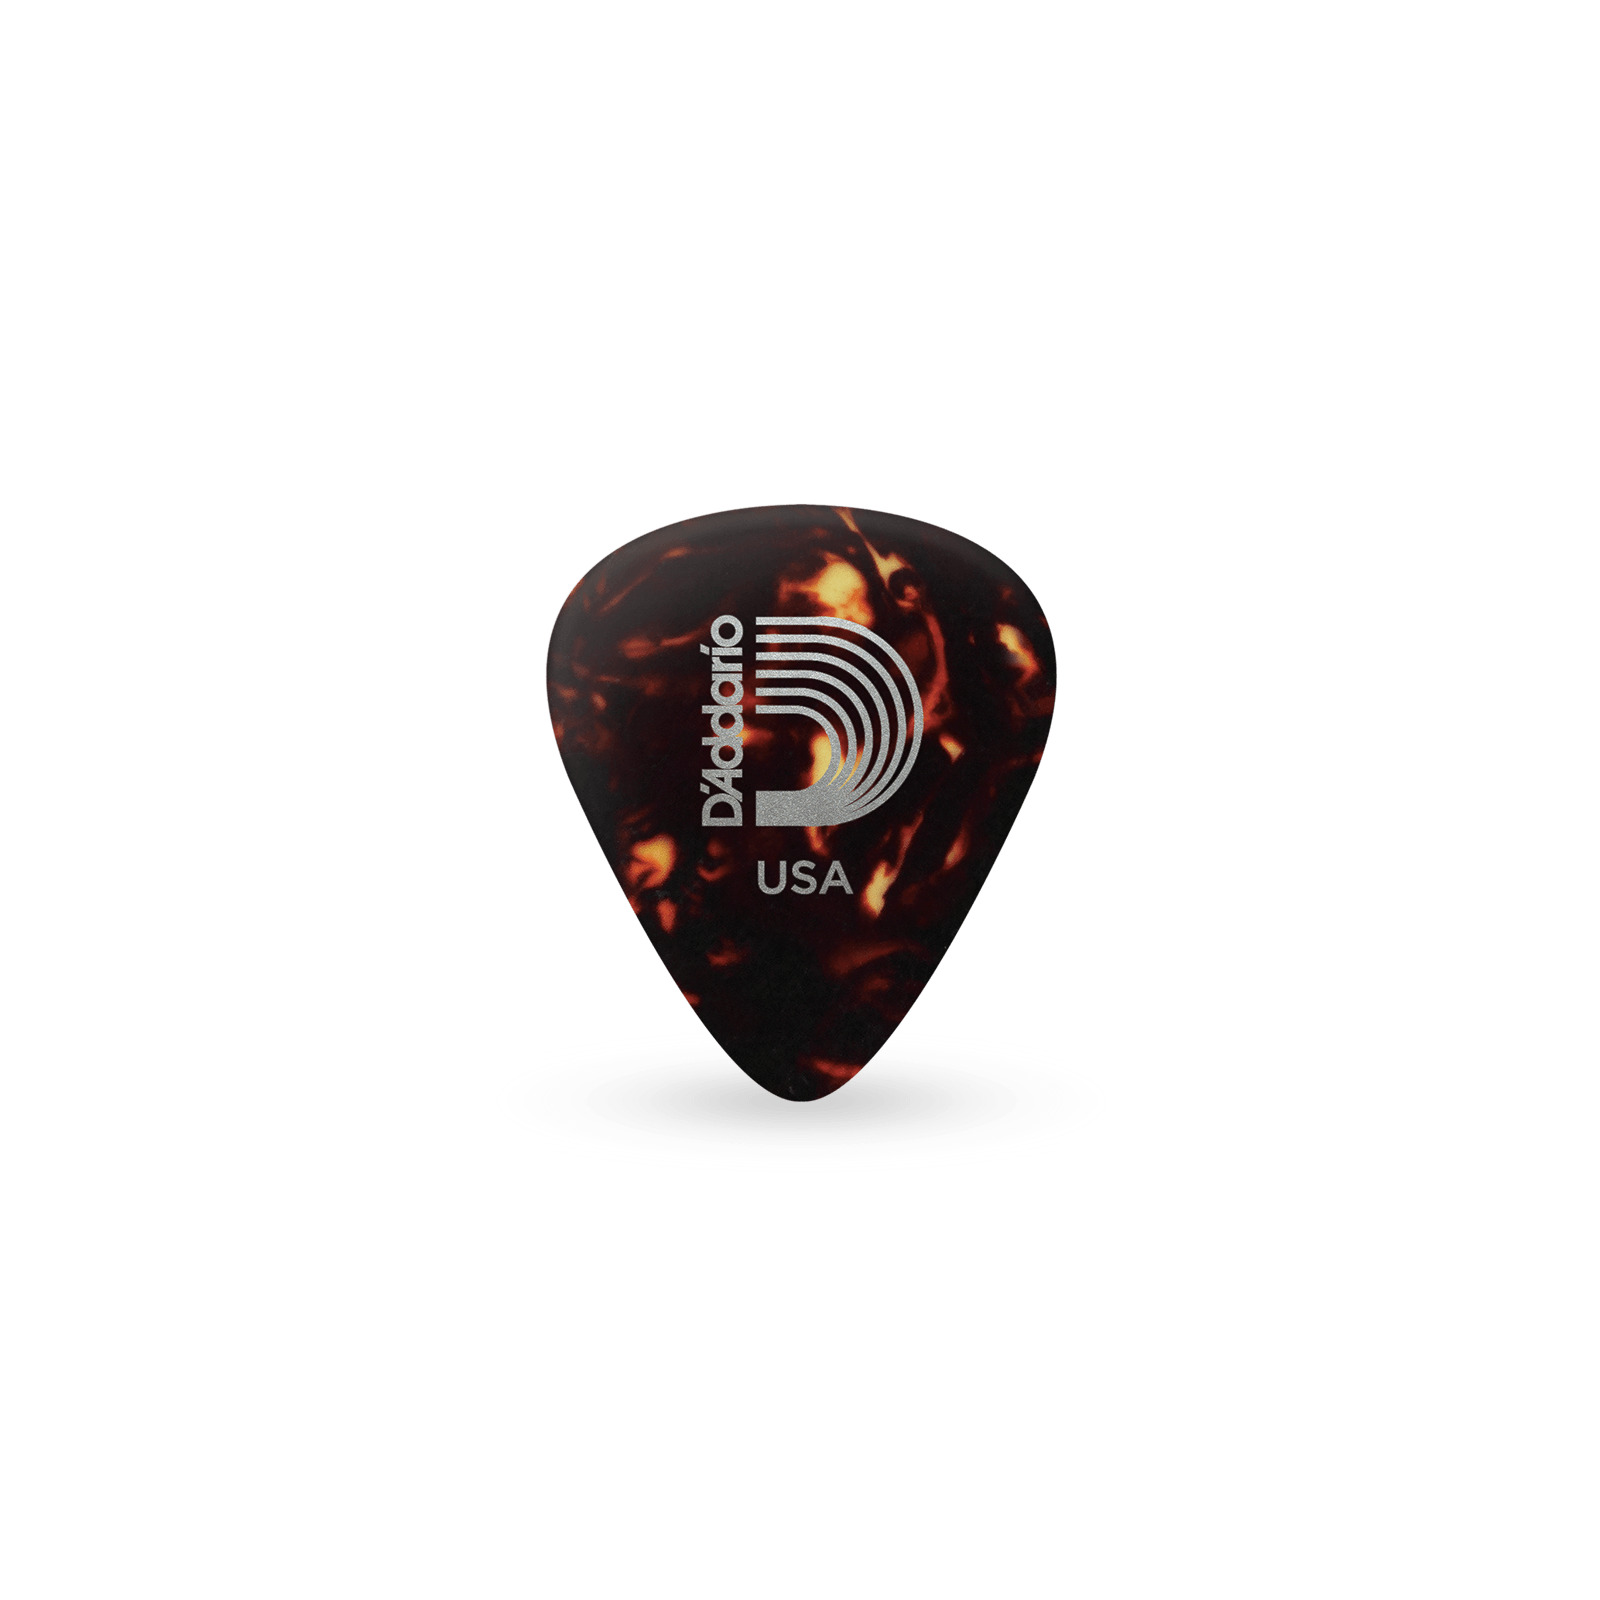 D'ADDARIO SHELL CLASSIC CELLULOID PICKS .50MM 10 PACK